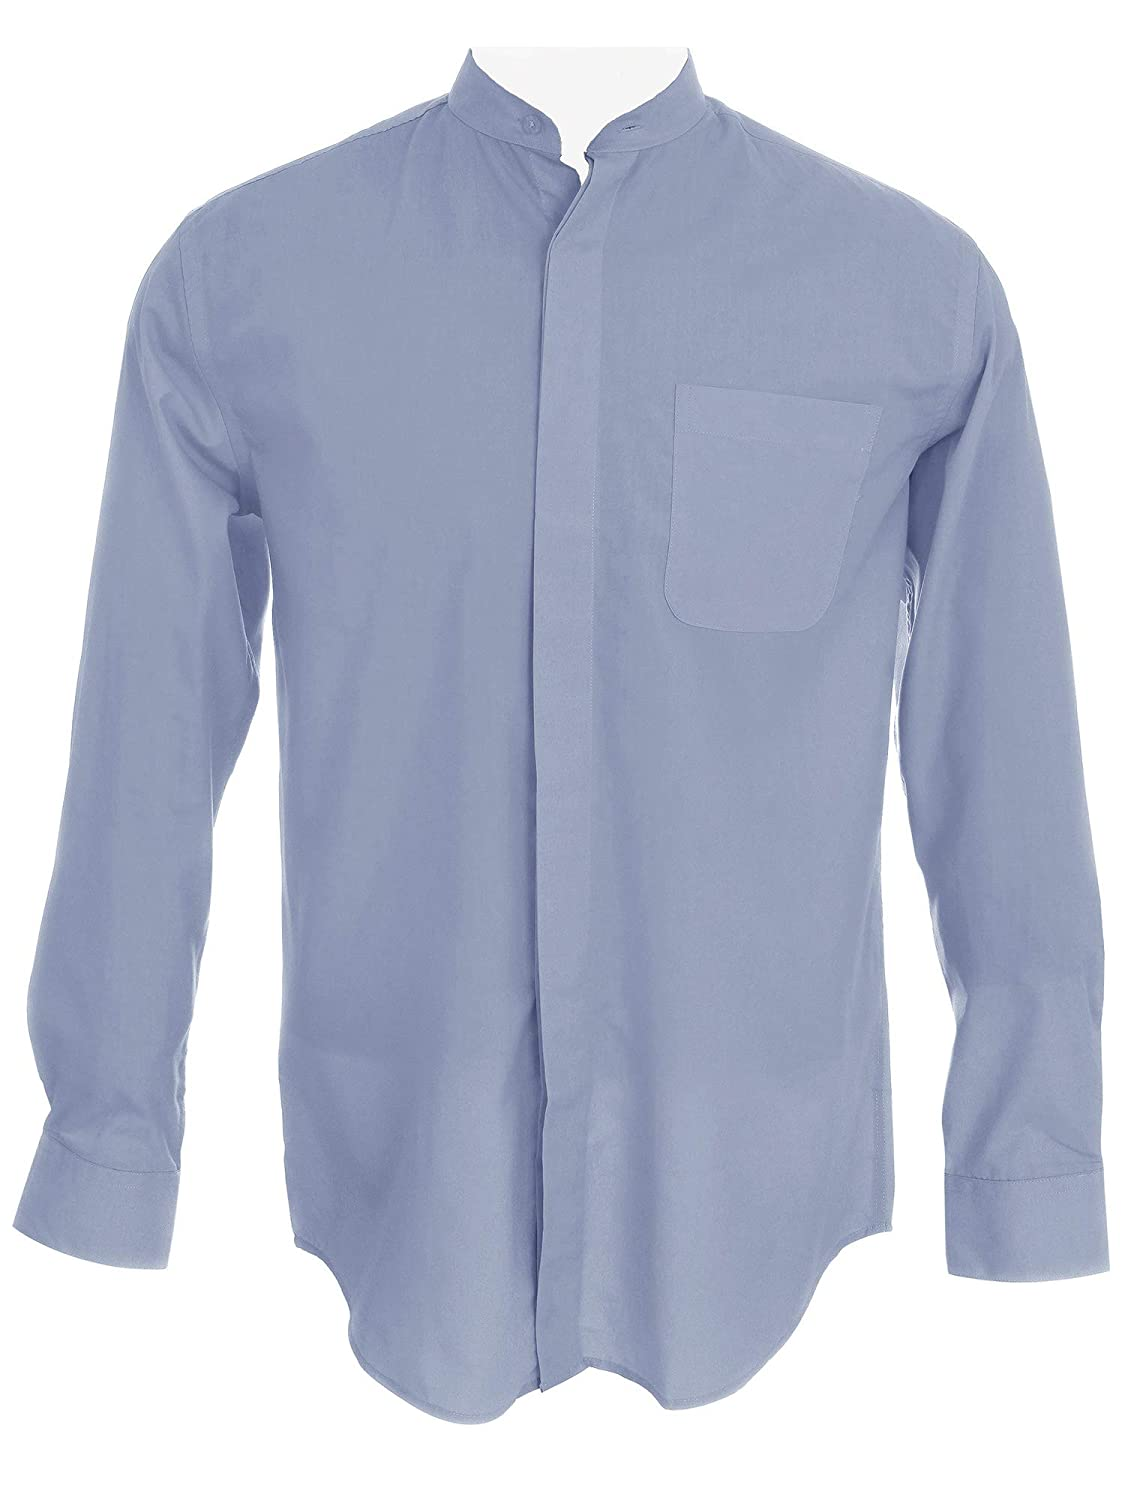 4a3006b6f3 Sunrise Outlet Men's Collarless Banded Collar Dress Shirt at Amazon Men's  Clothing store: